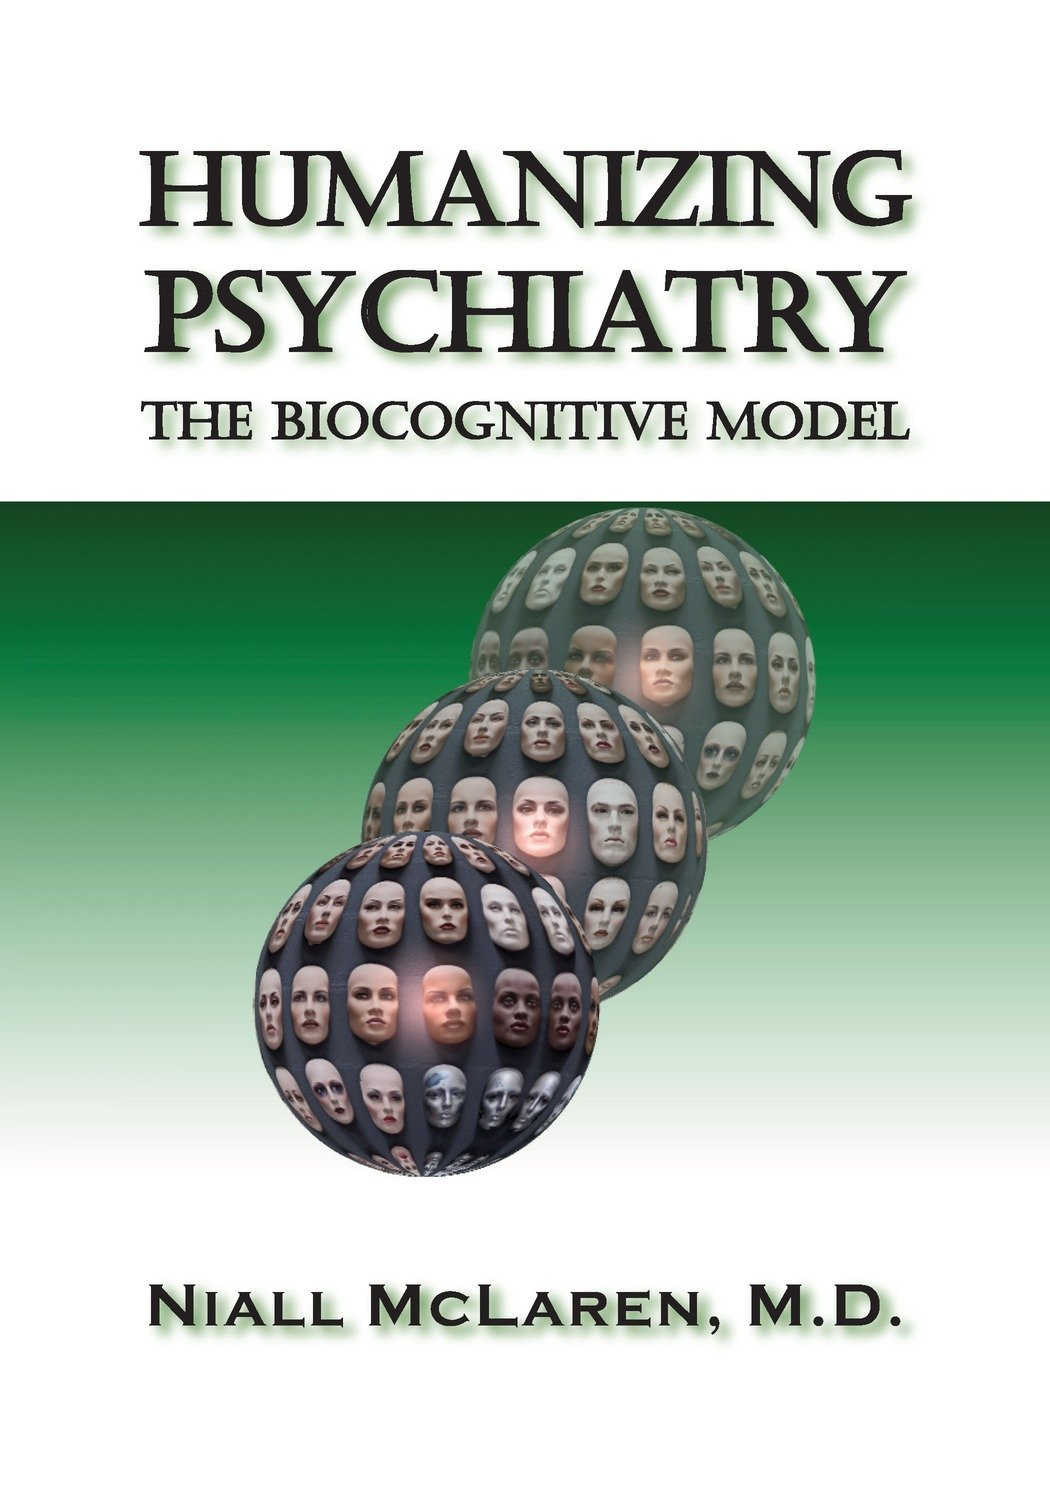 Humanizing Psychiatry